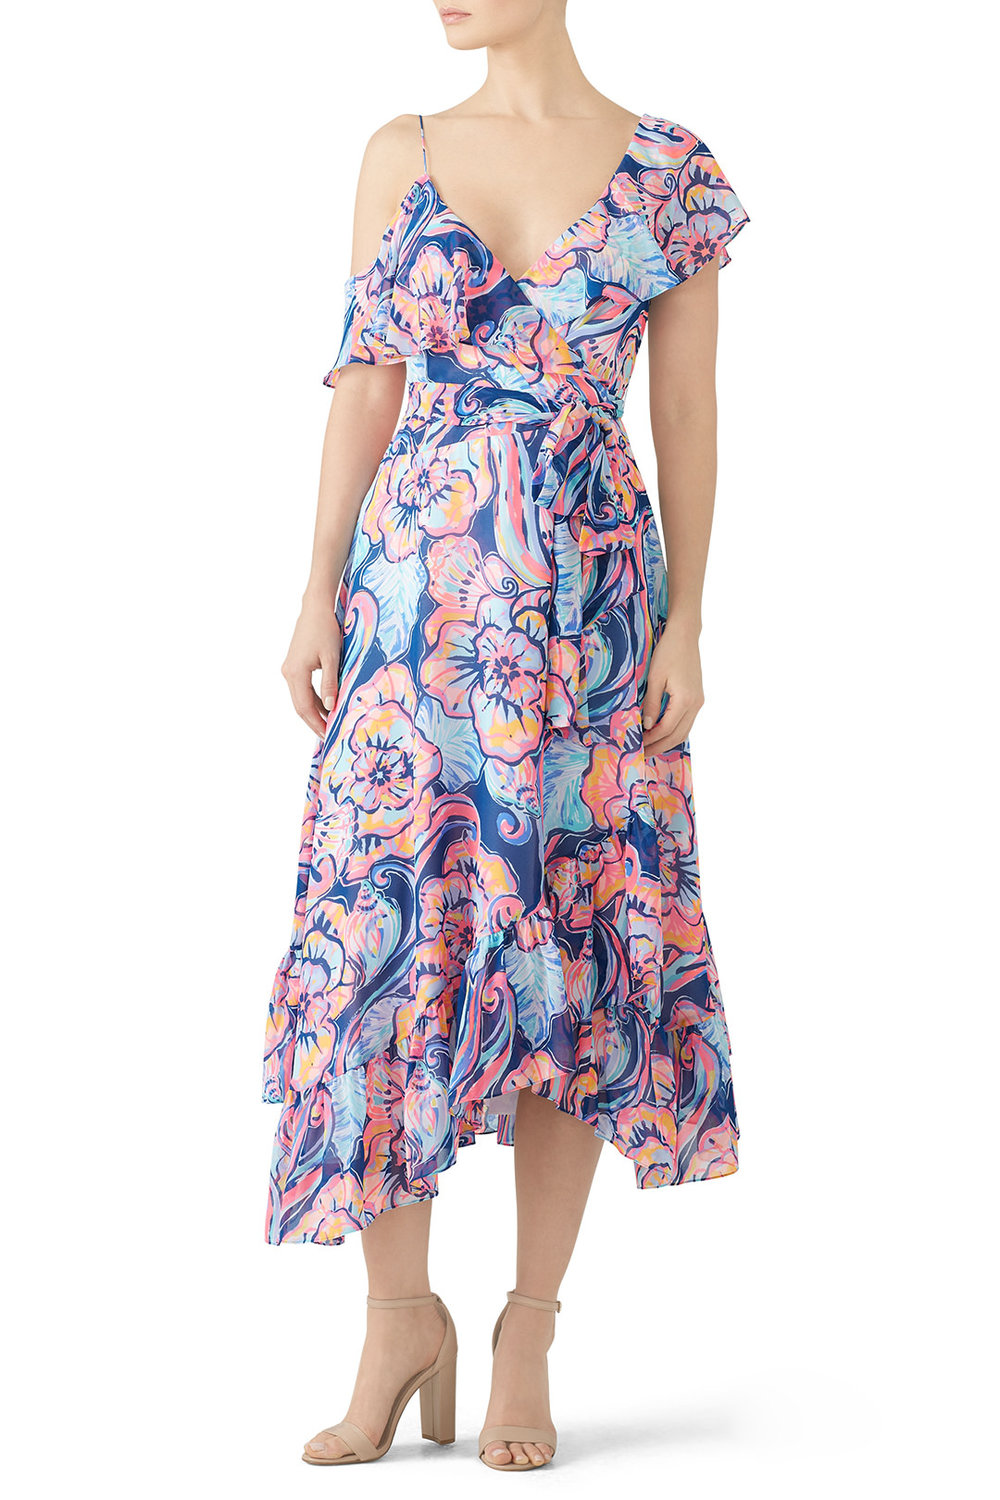 Lilly Pulitzer Marinanna Wrap Dress